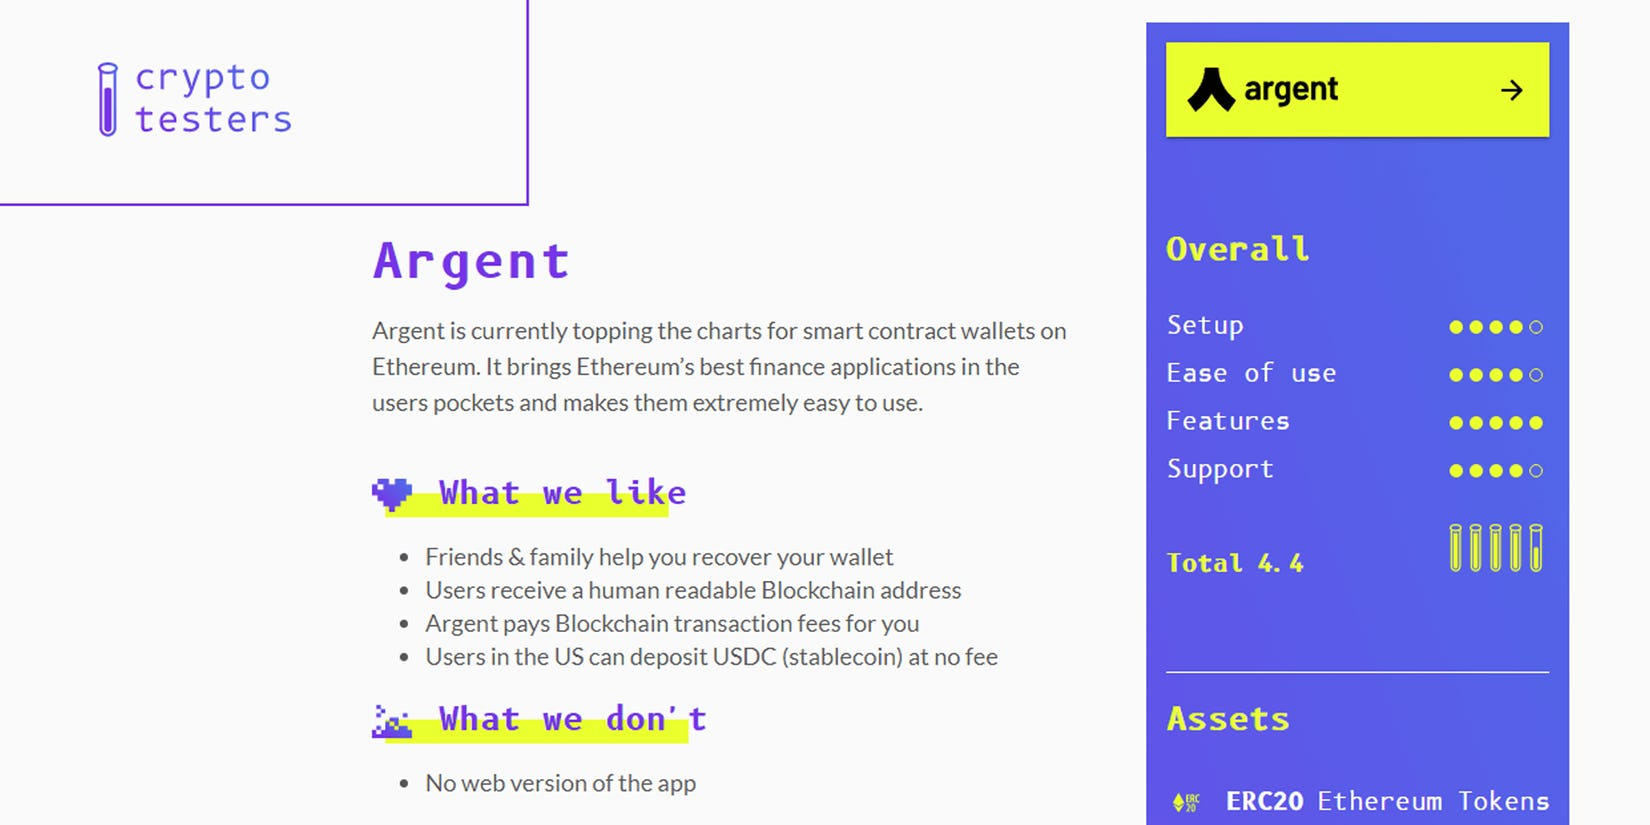 Cryptotesters review of the best custodial wallets - Argent in 1st place